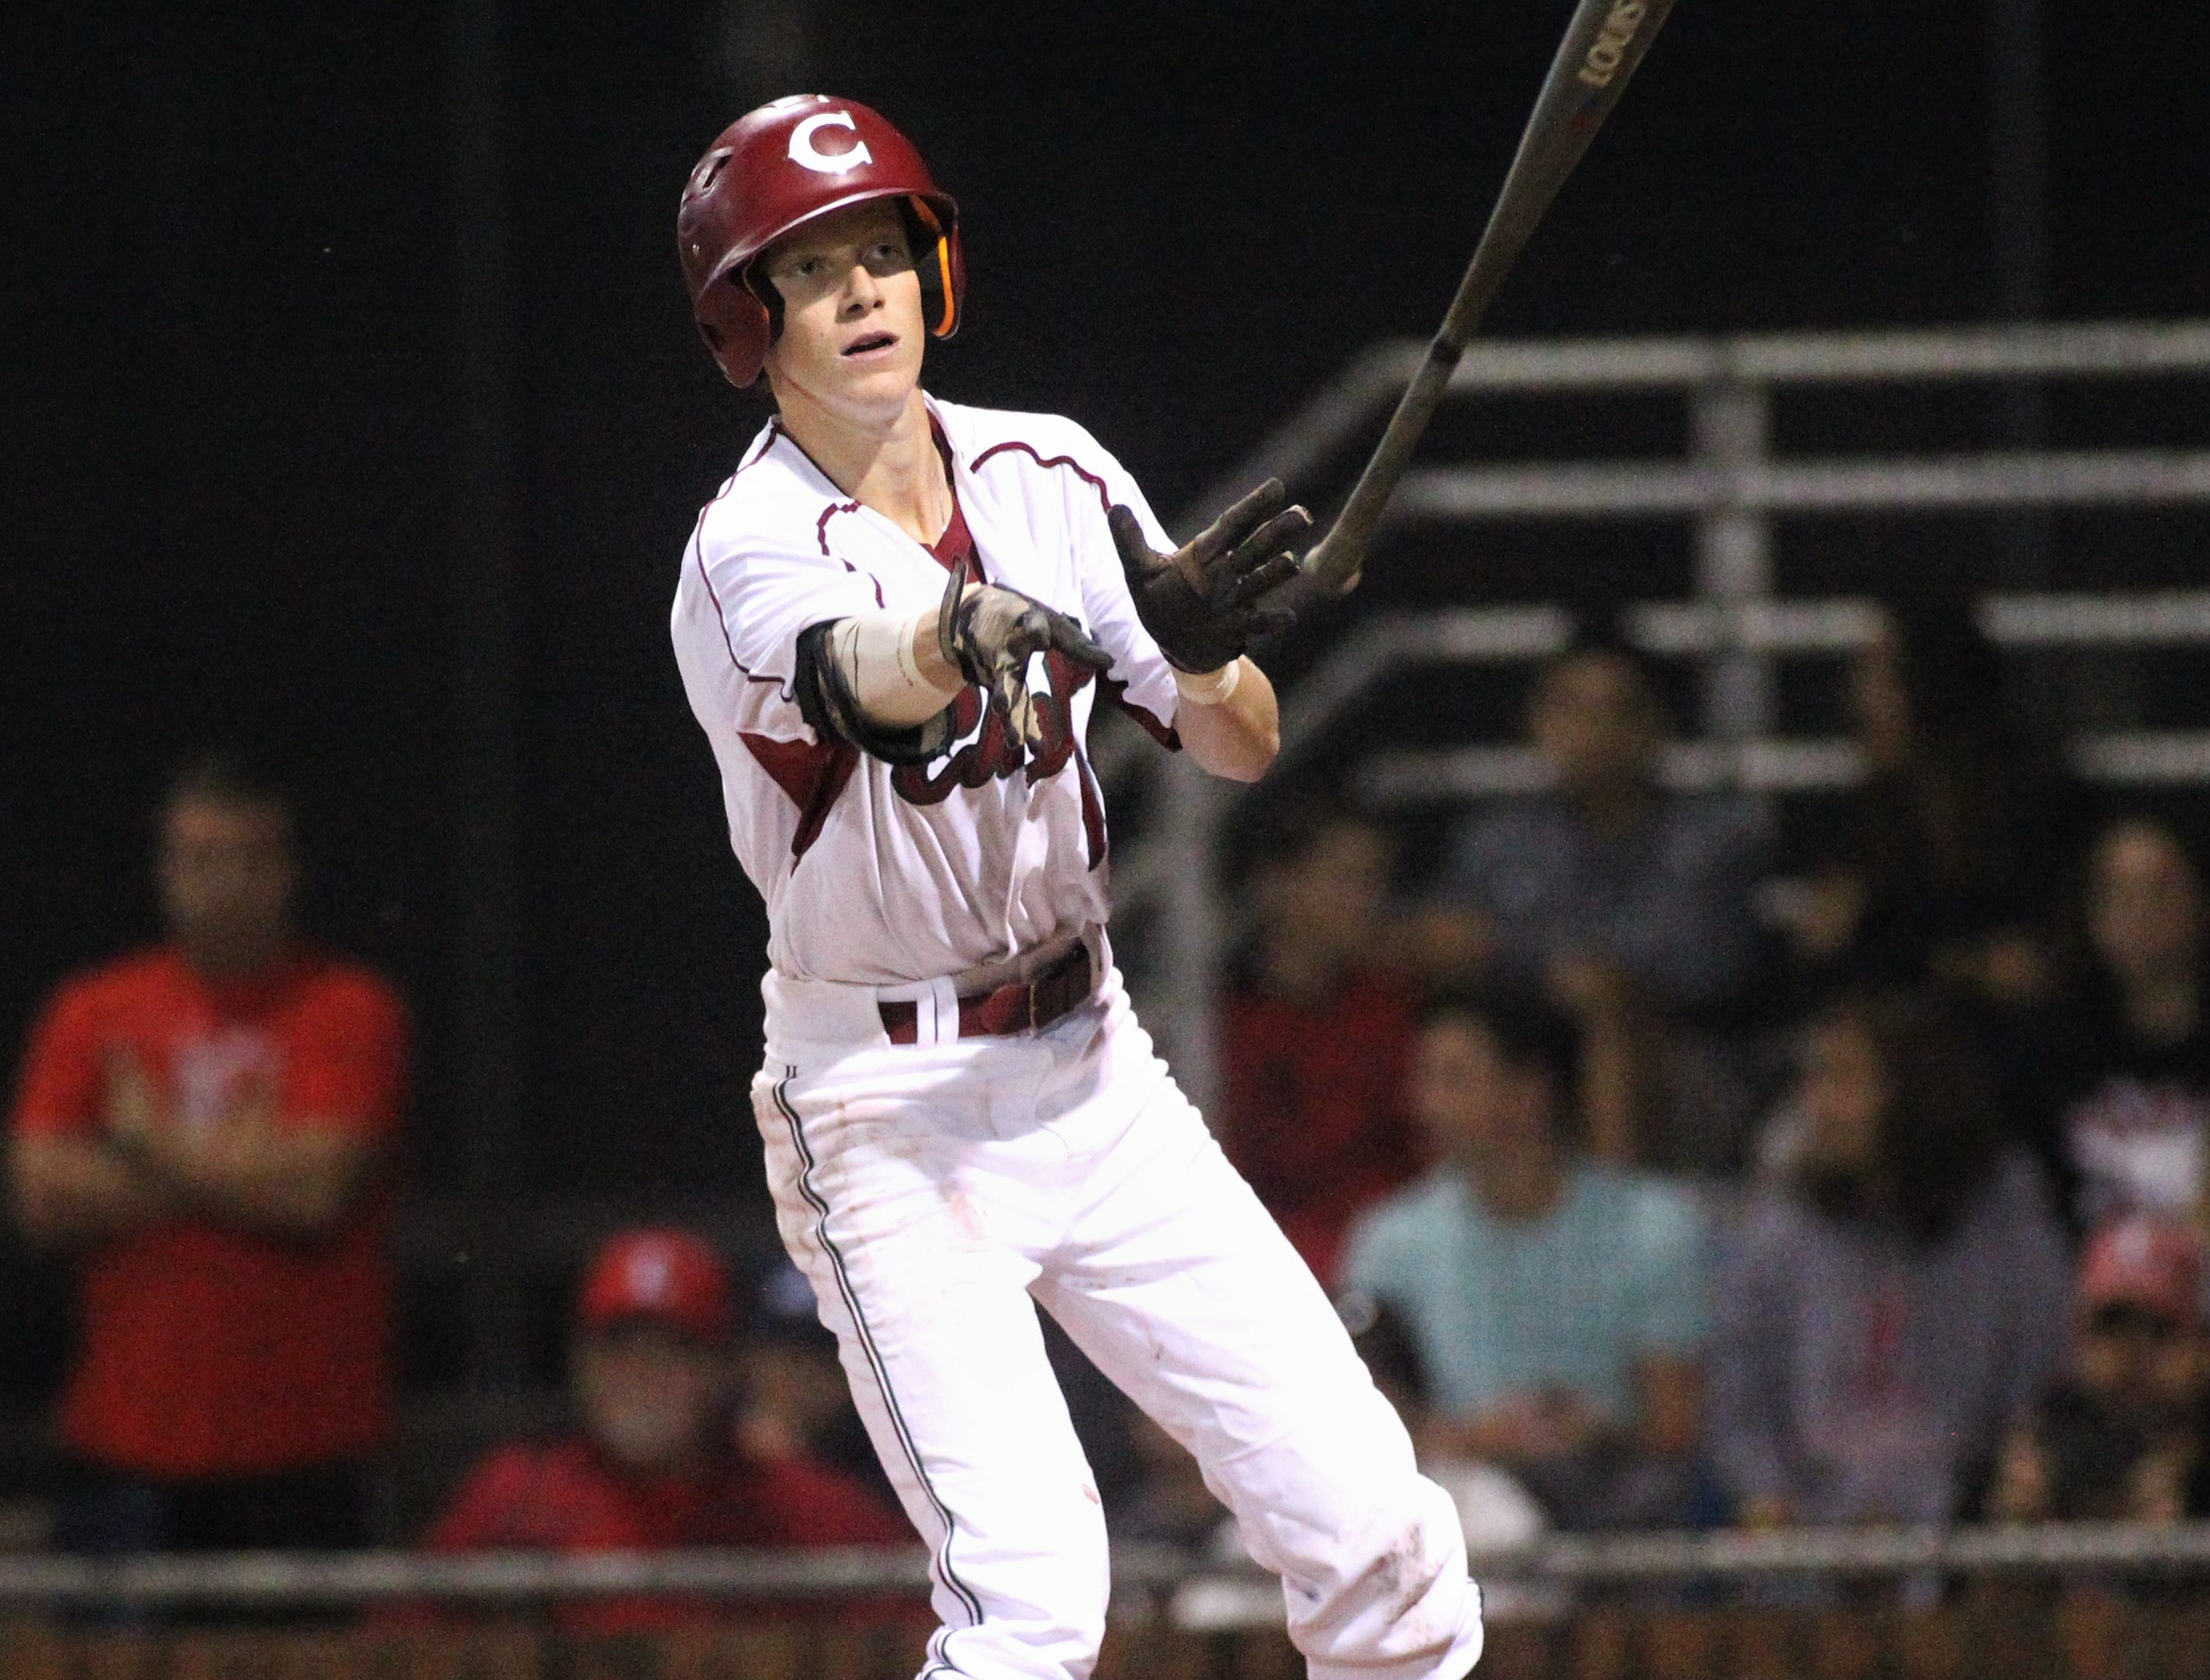 Chiles senior Sam Rudd tosses his bat after a walk as Chiles won an 11-6 home game against Leon on Friday, April 5, 2019, to force a season split. The Lions won 3-0 earlier in the week.